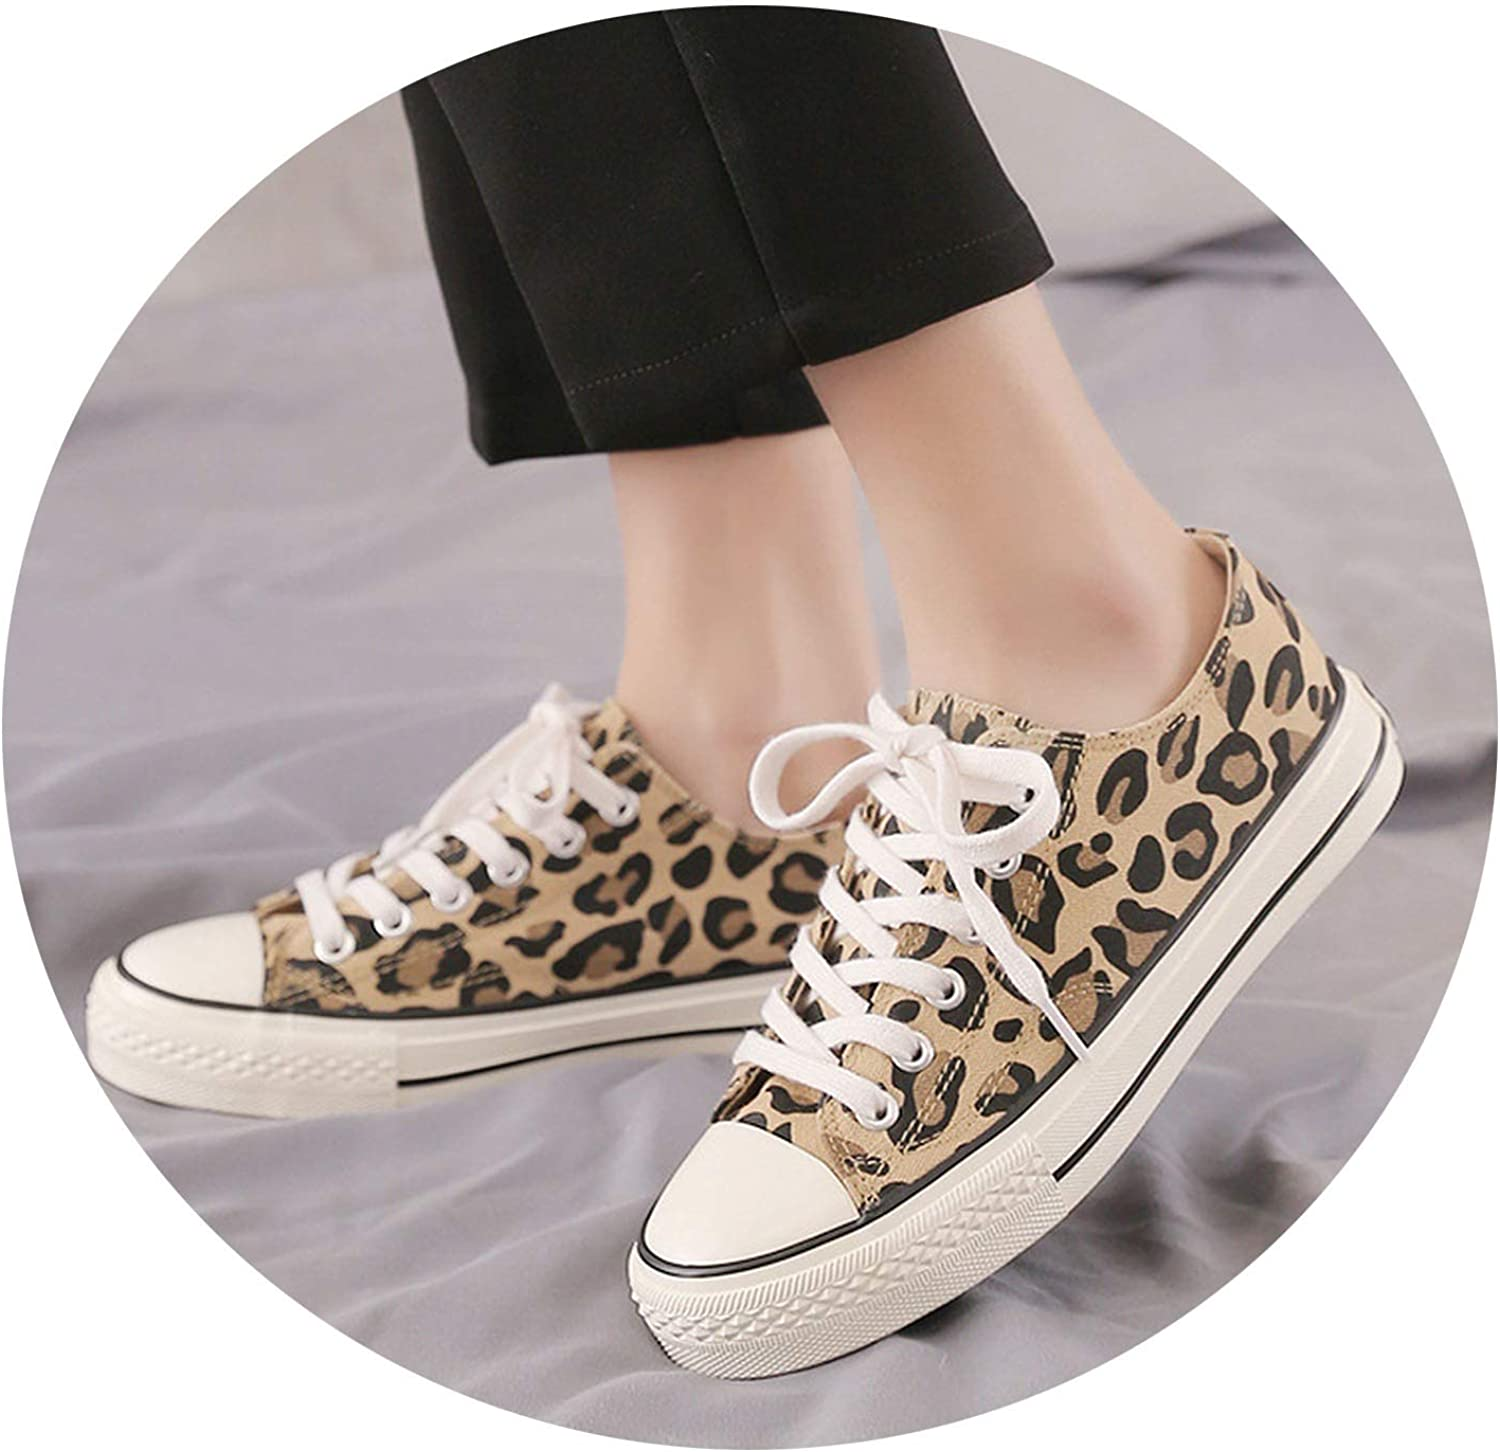 I Need-You Women Casual shoes Women Sneakers 2019 Lace Up Female shoes Spring Autumn Comfotable for Women shoes